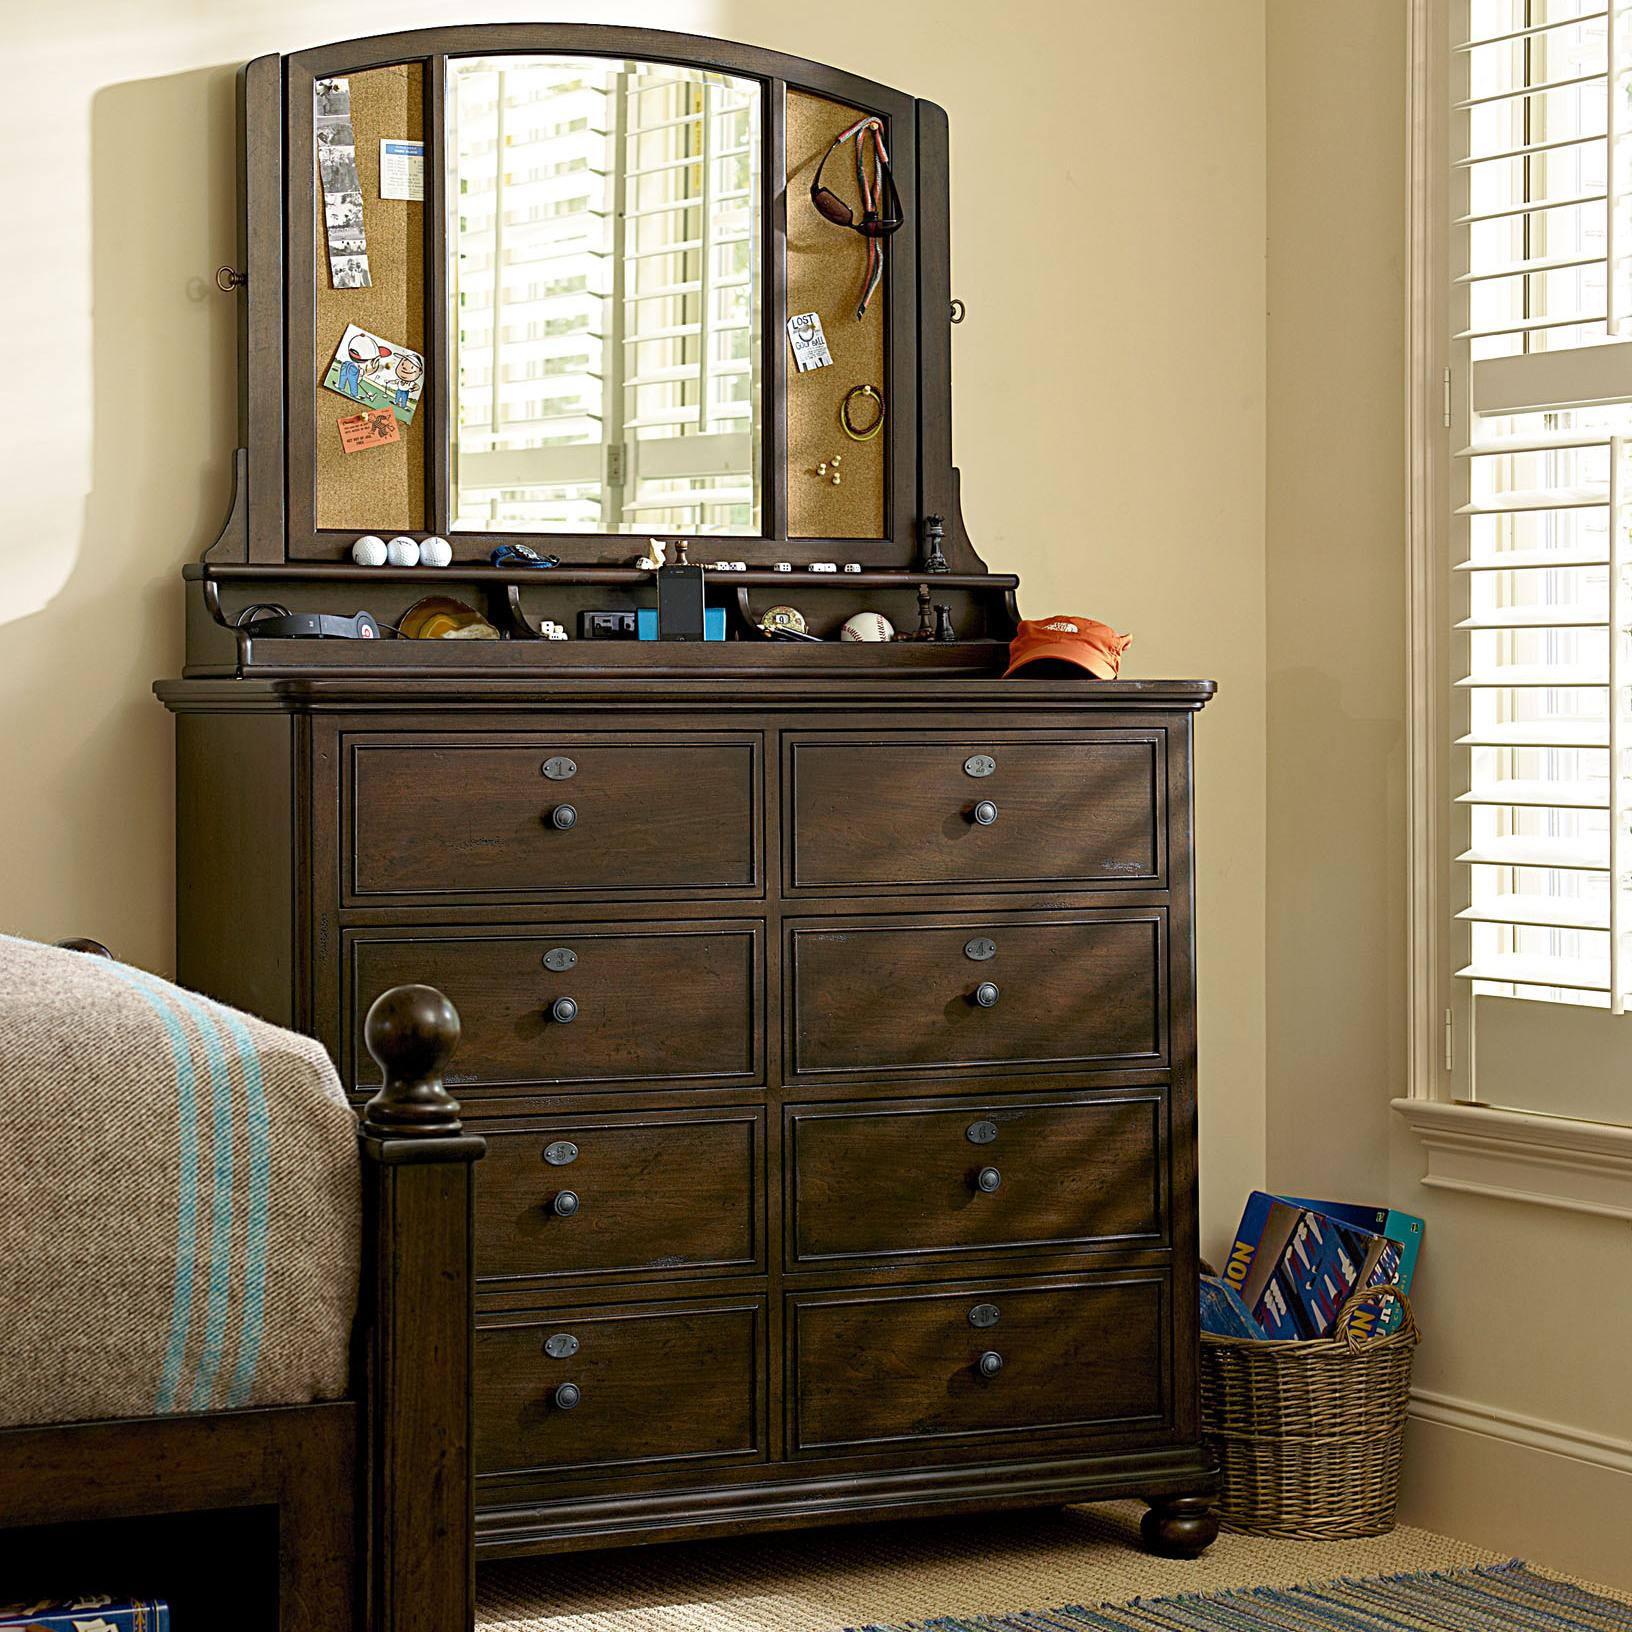 Morris Home Pine Valley Chest & Mirror - Item Number: 2391004+033